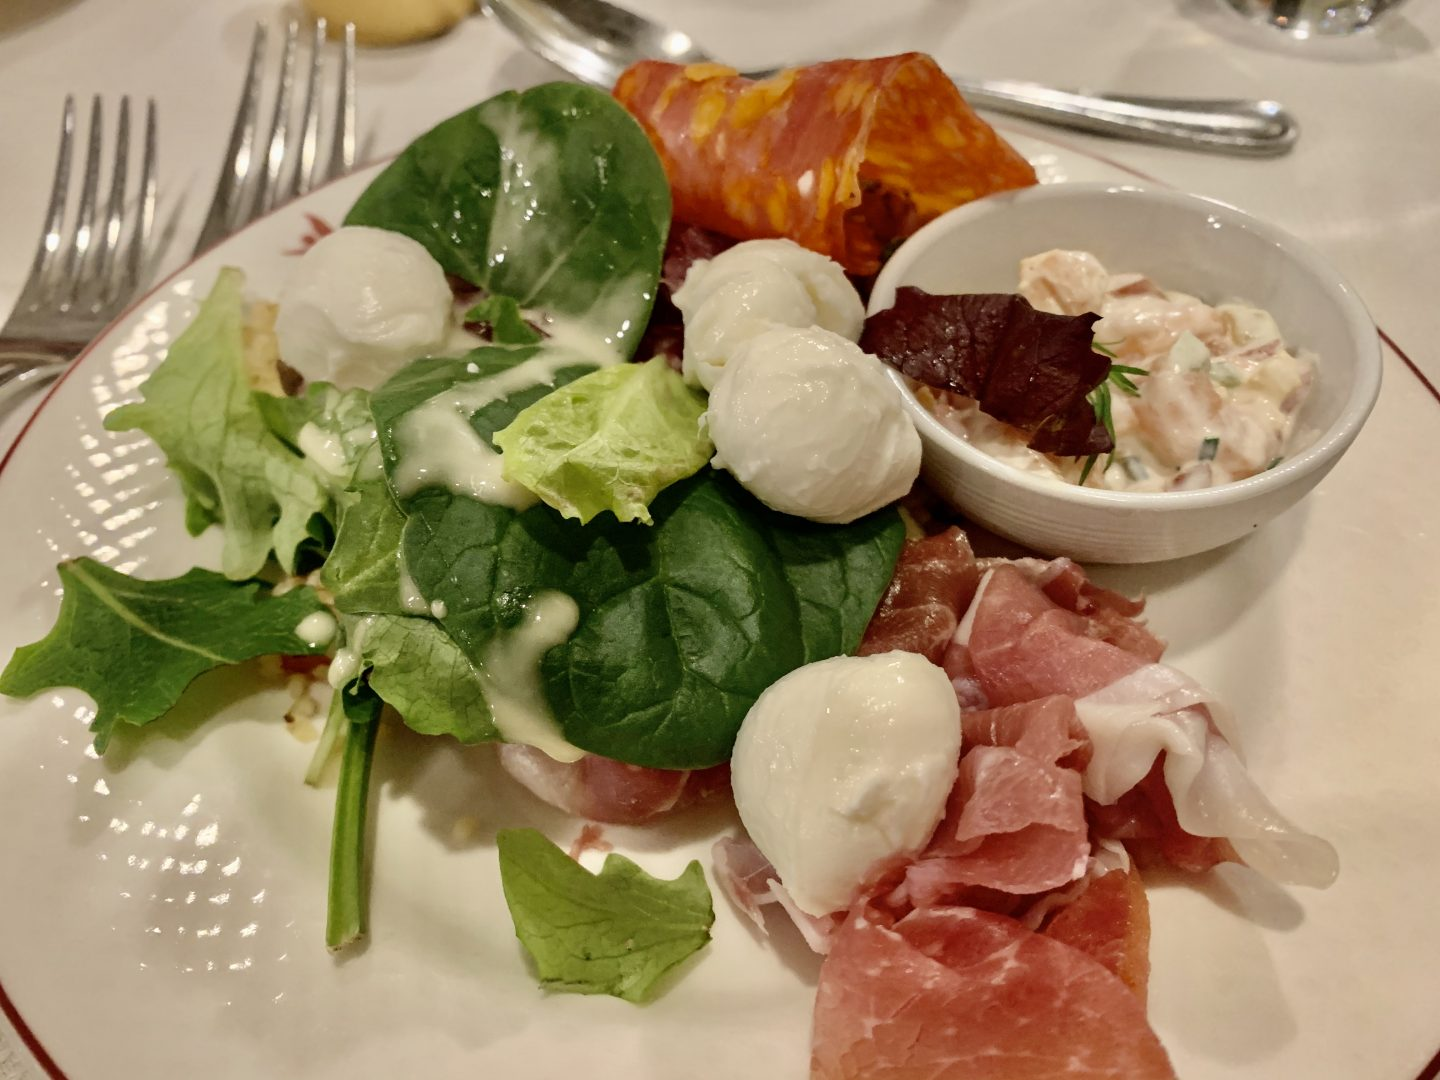 Starter food and salad from Inventions buffet Disneyland Paris